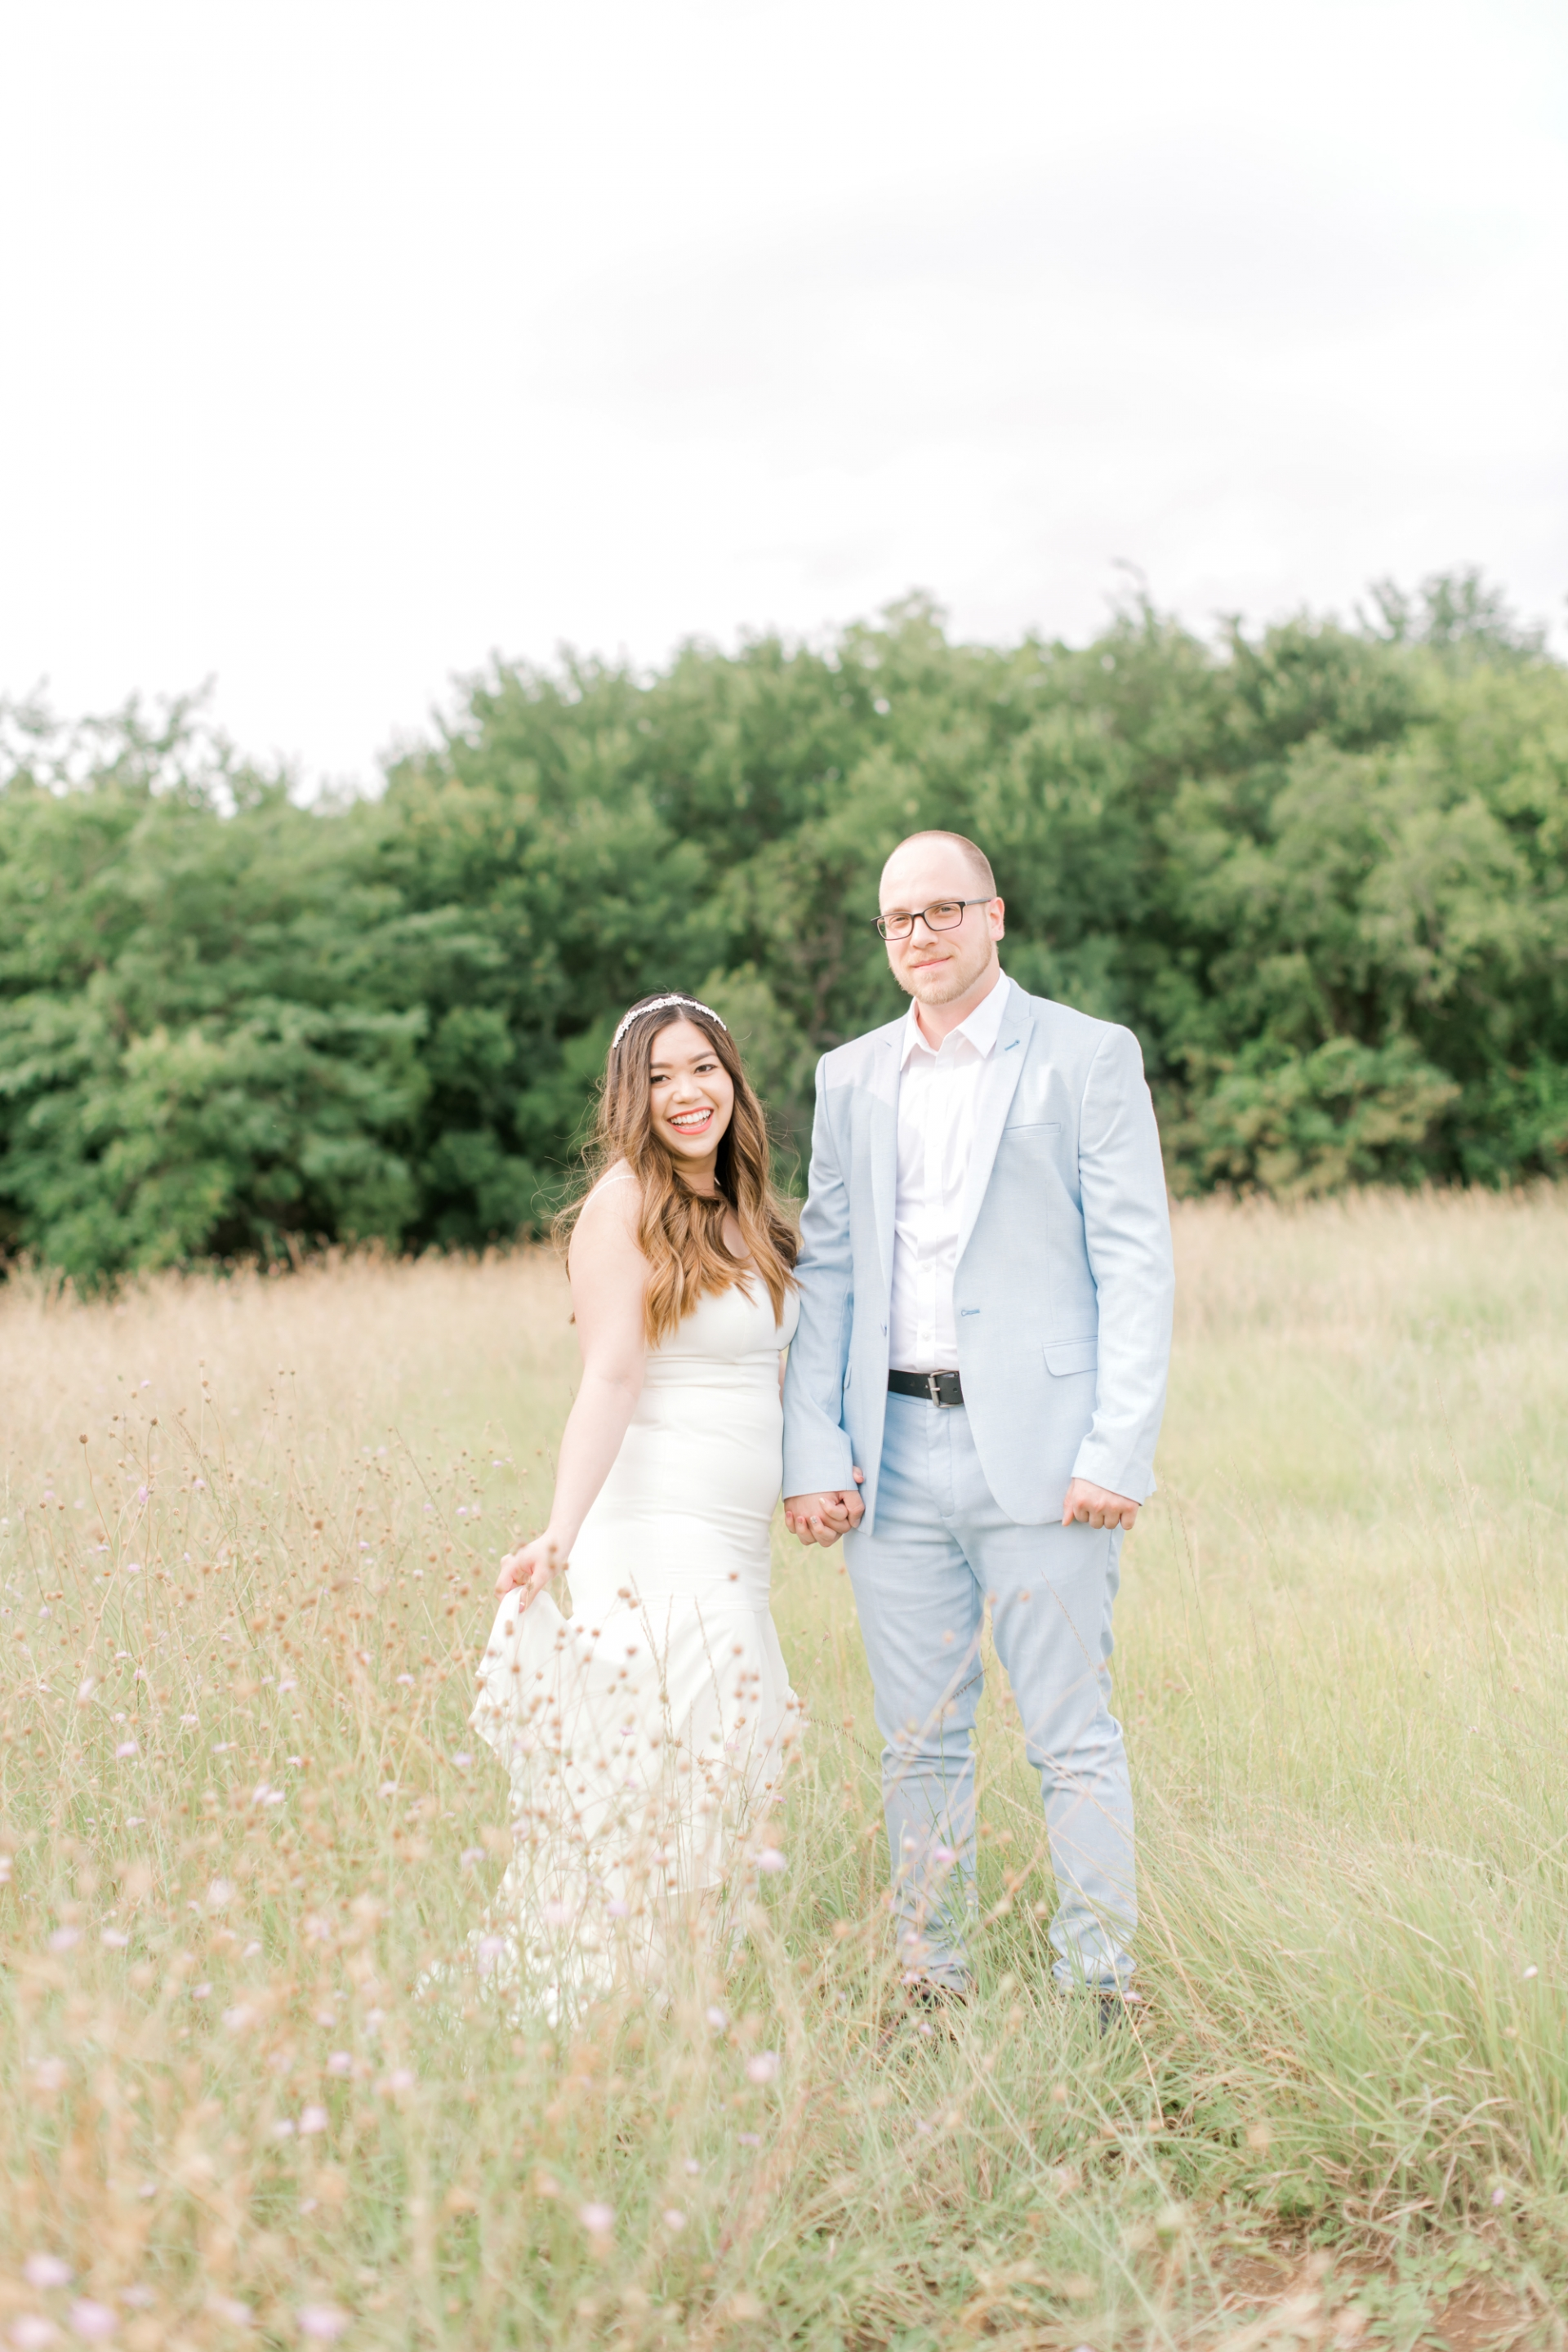 David's Bridal Engagement Dress Little White Dress Affordable Wedding Dress Under $350 Engagement Session Engagement Shoot Dreamy Engagement Photos Greenery Wildflowers Nature Engagement Pictures Couple Goals Couple Pictures Couple Shoot Blue by Betsy Johnson Heels Pearl Floral Appliqués Celestial Star Bridal Headband Baby Blue Tuxedo Light Blue Suit Men's